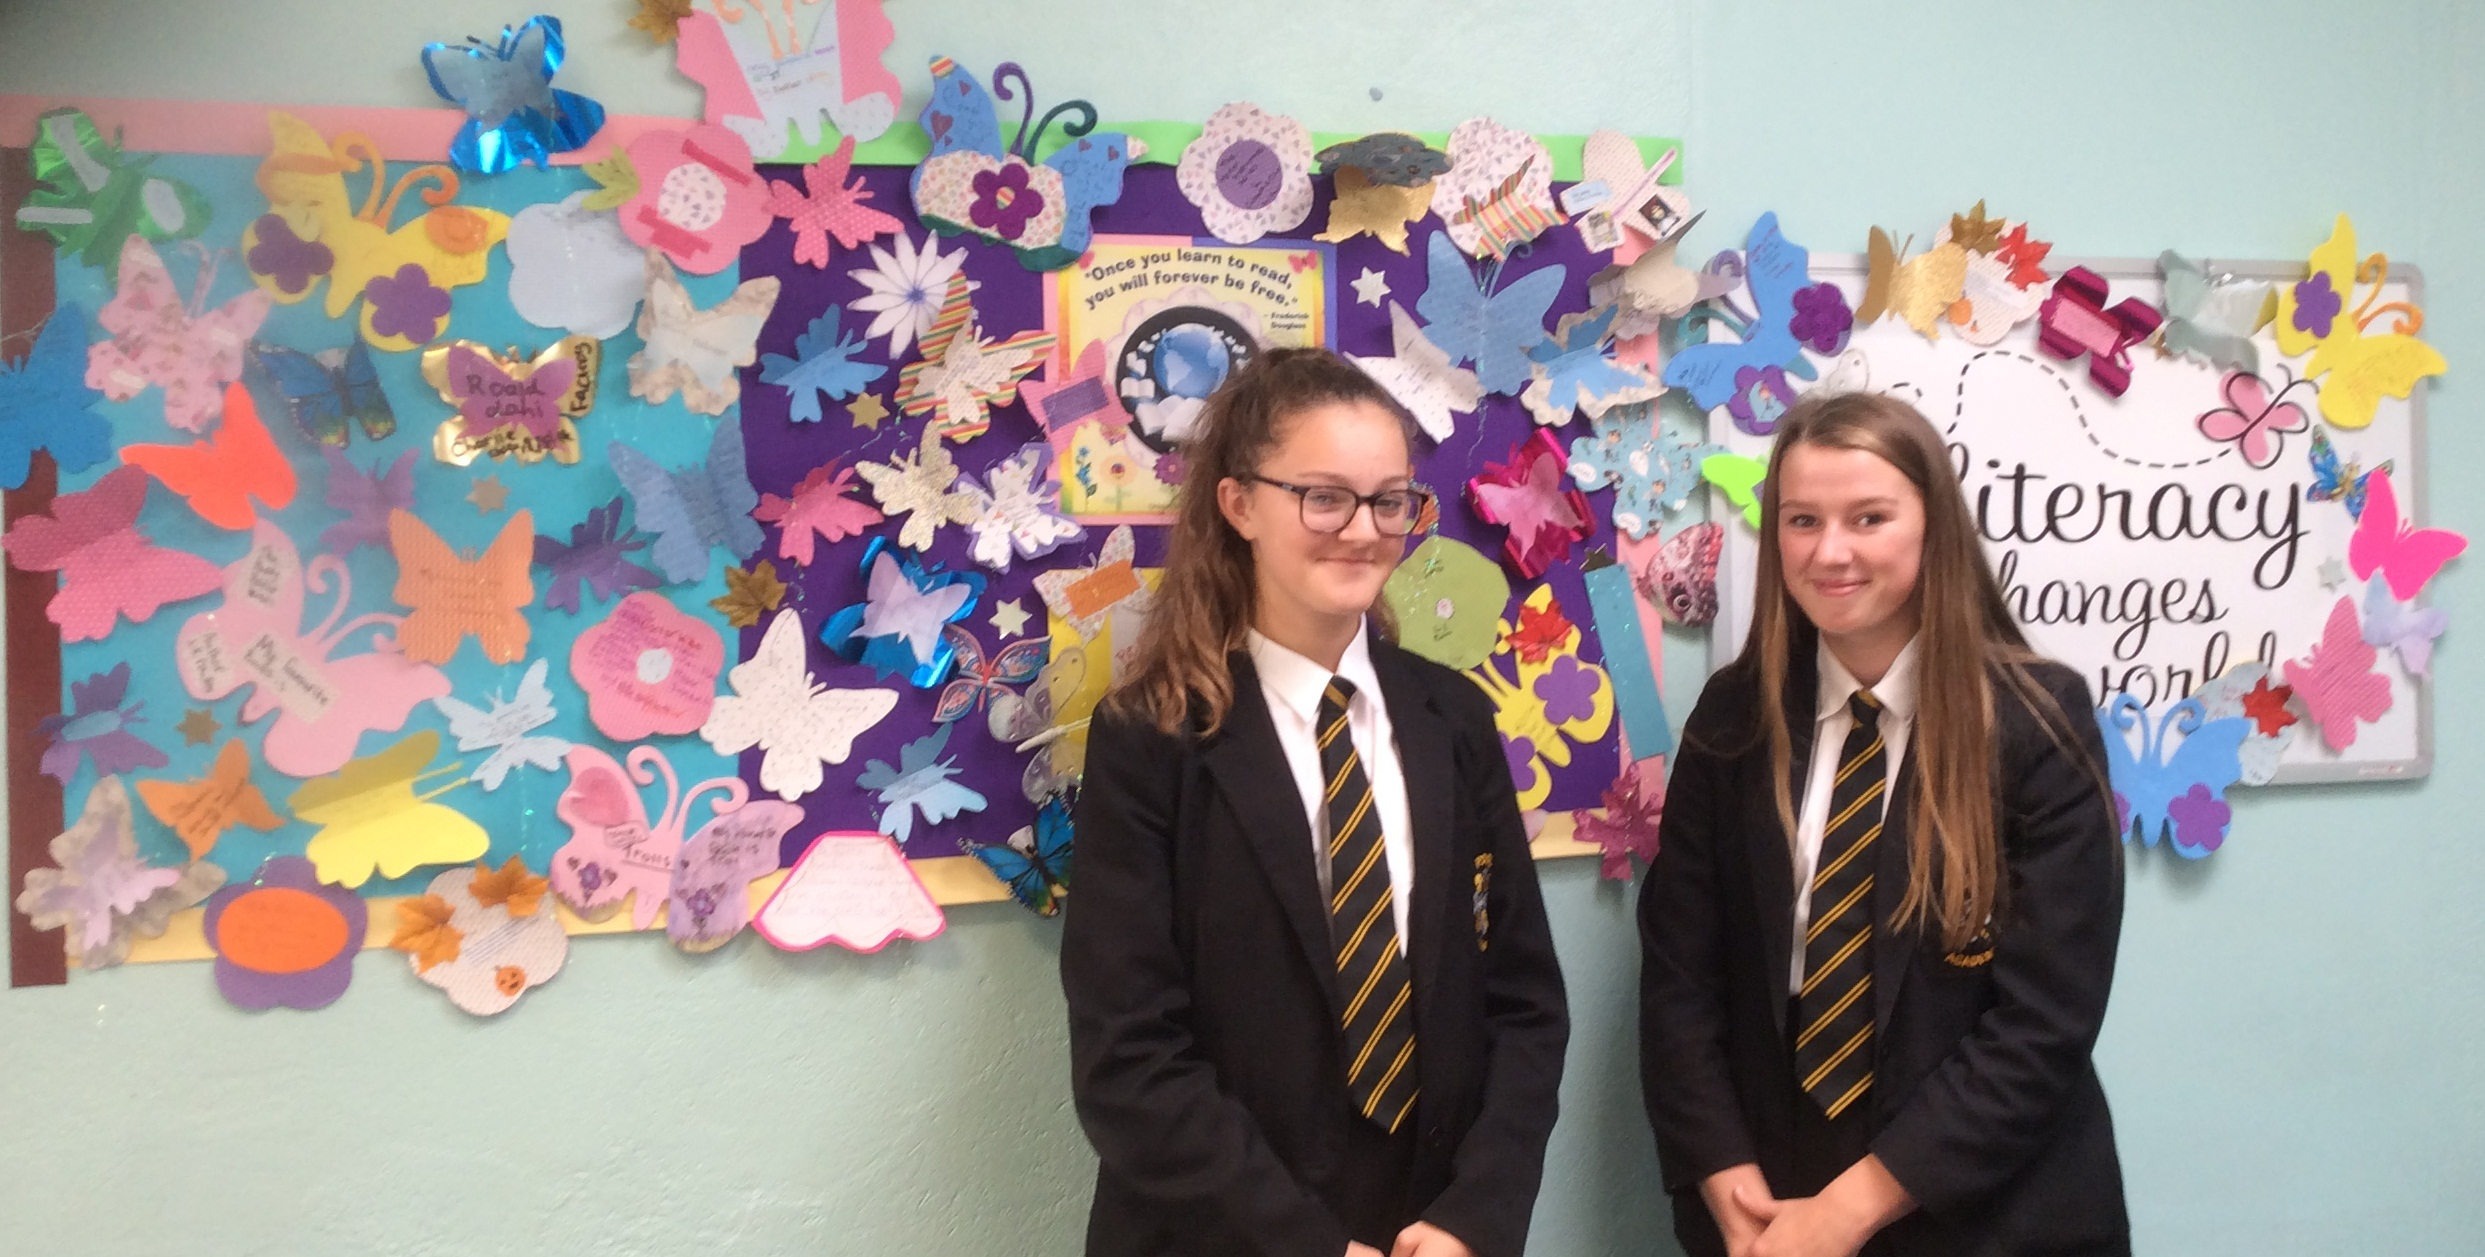 Lily and Kerry with the new display board